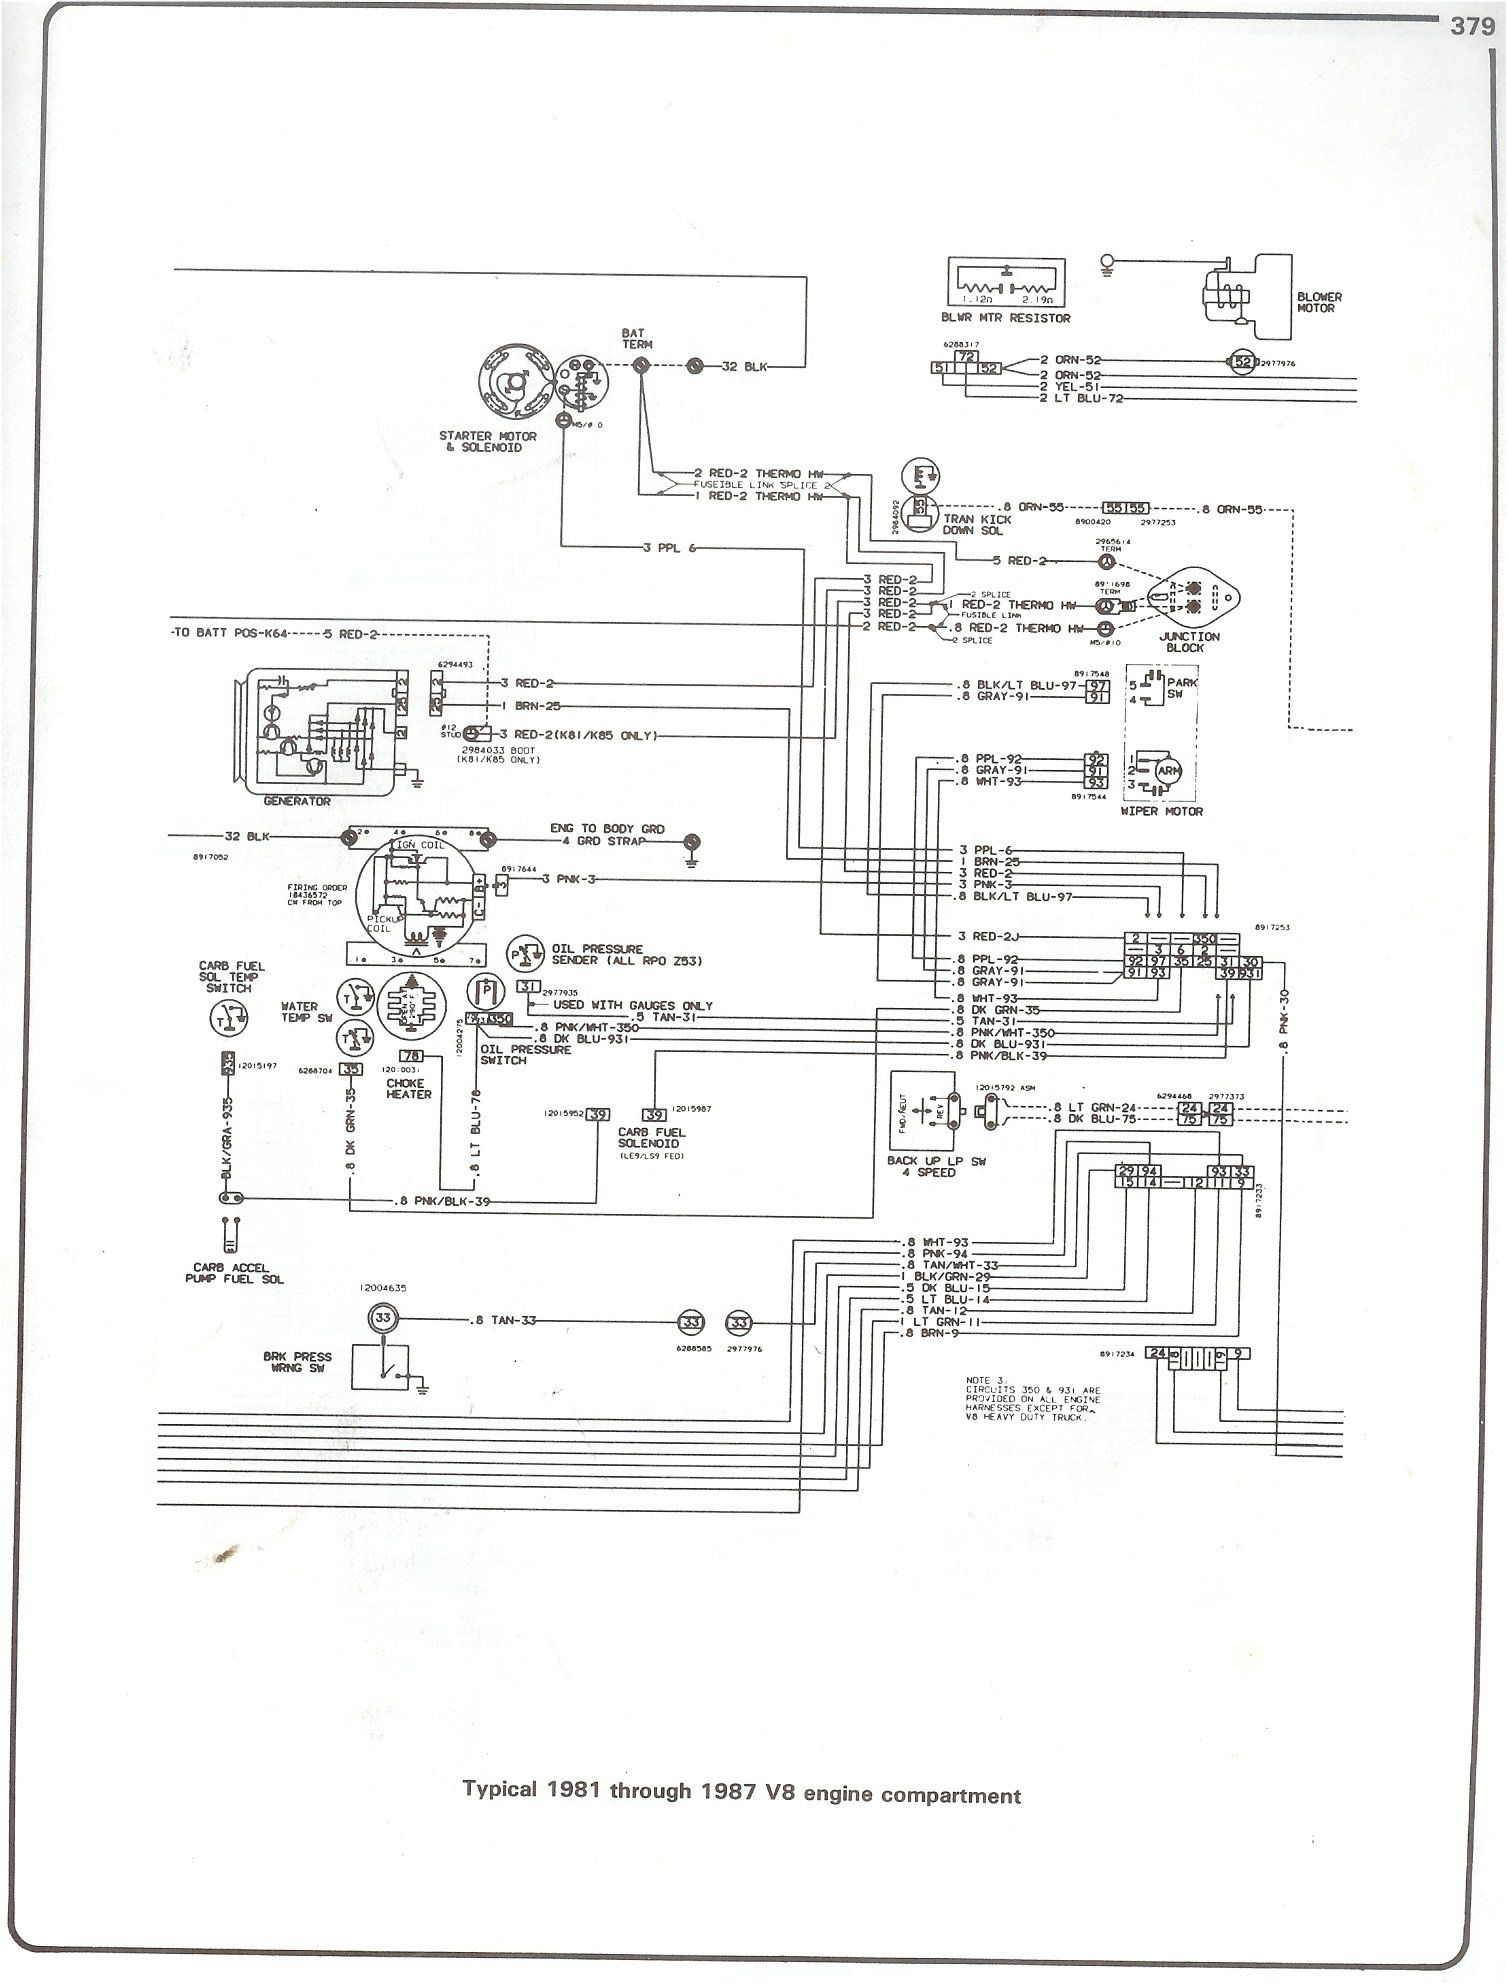 87 Chevy Hei Distributor Wiring Diagram Get Free Image About Wiring